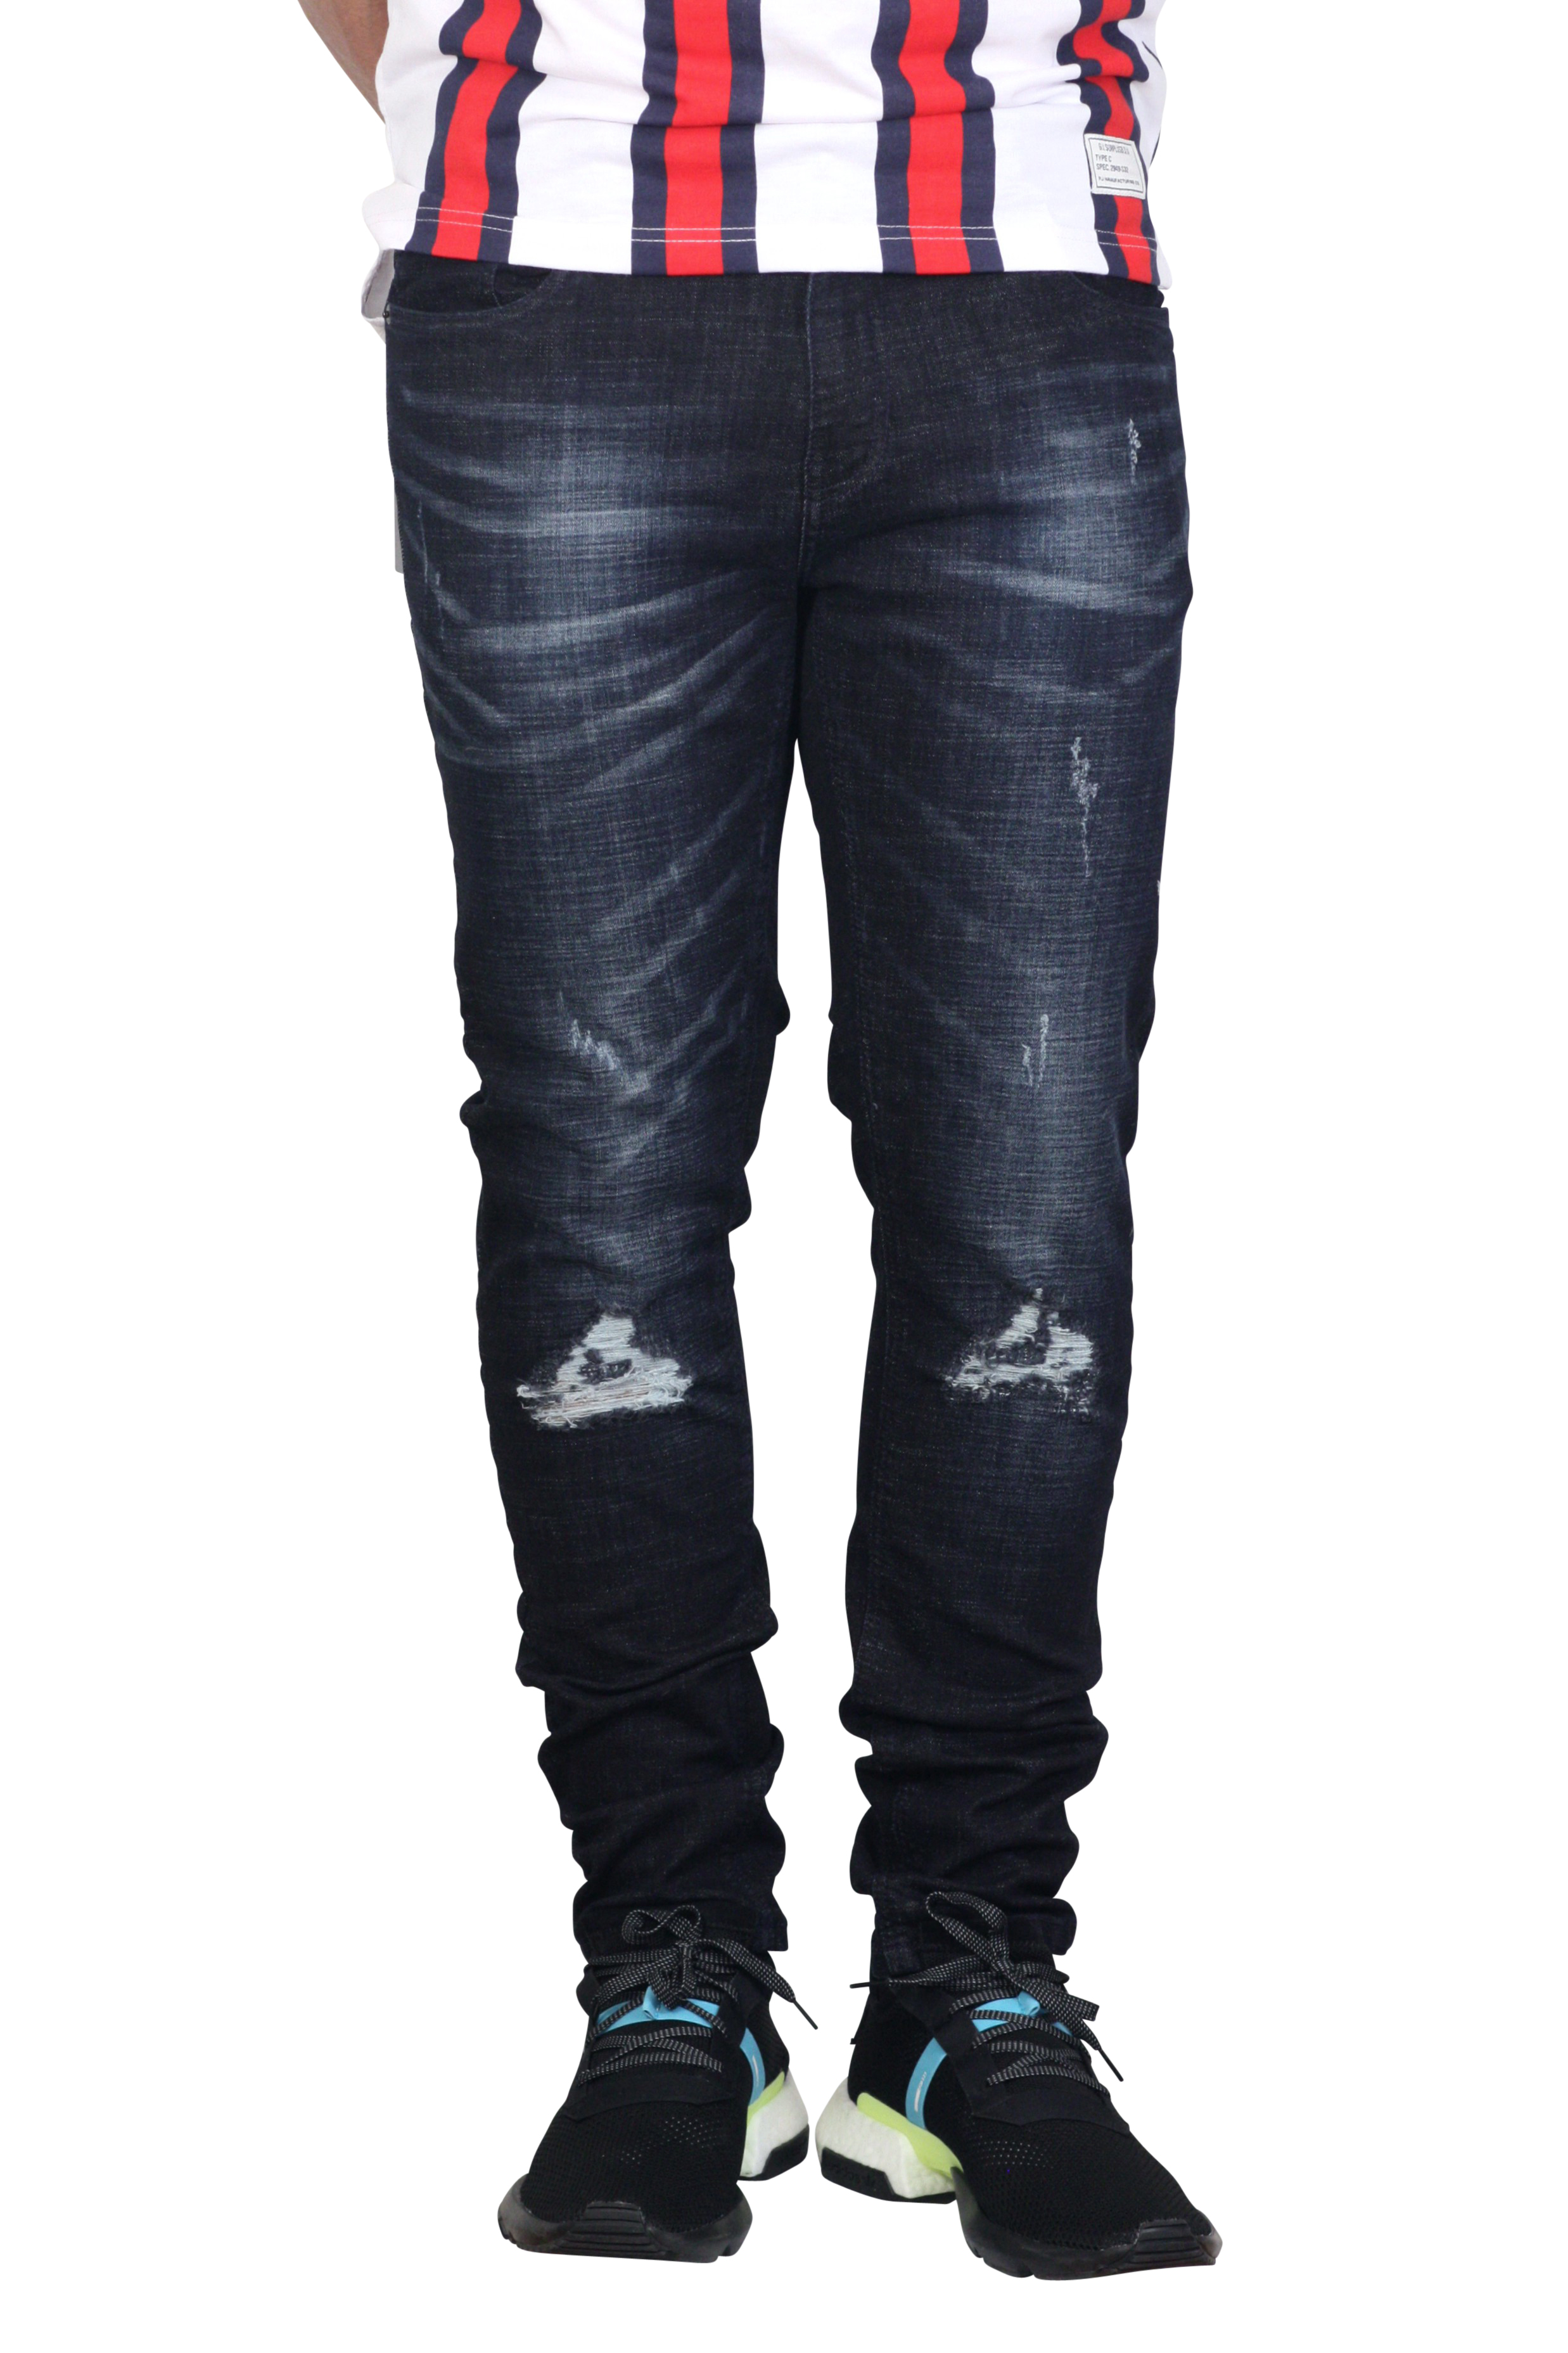 COPPER RIVET Skinny Fit Washed Jeans with Rips and Tears Dark Wash